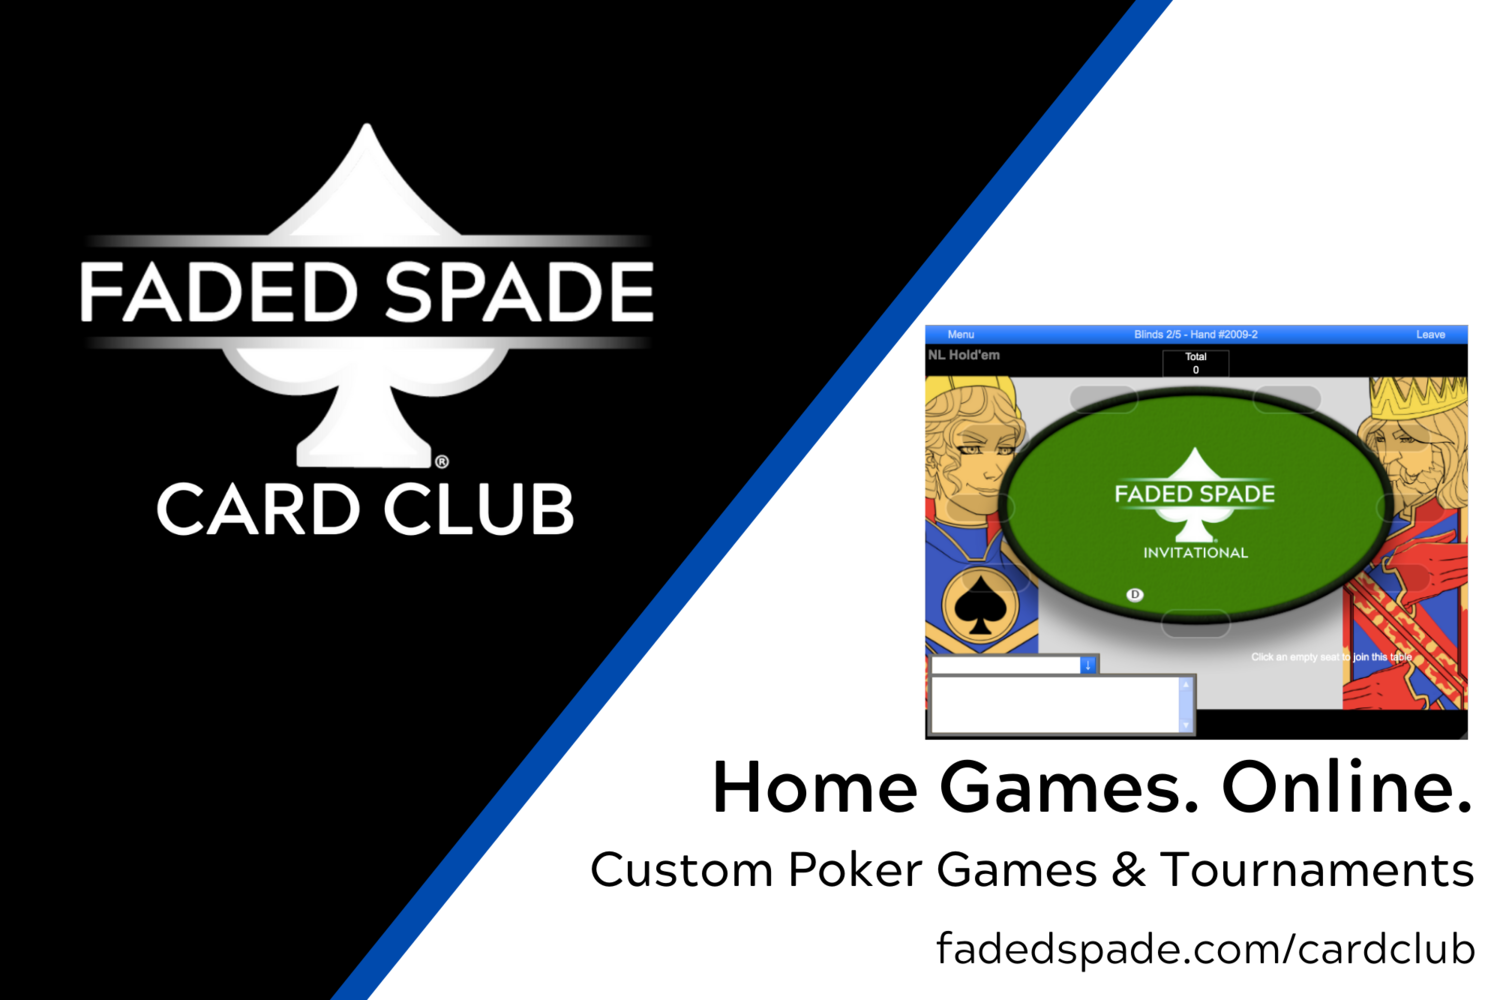 Introducing The Faded Spade Card Club Home Poker Games Online Faded Spade Virtual Poker 100 Plastic Poker Playing Cards The New Face Of Cards